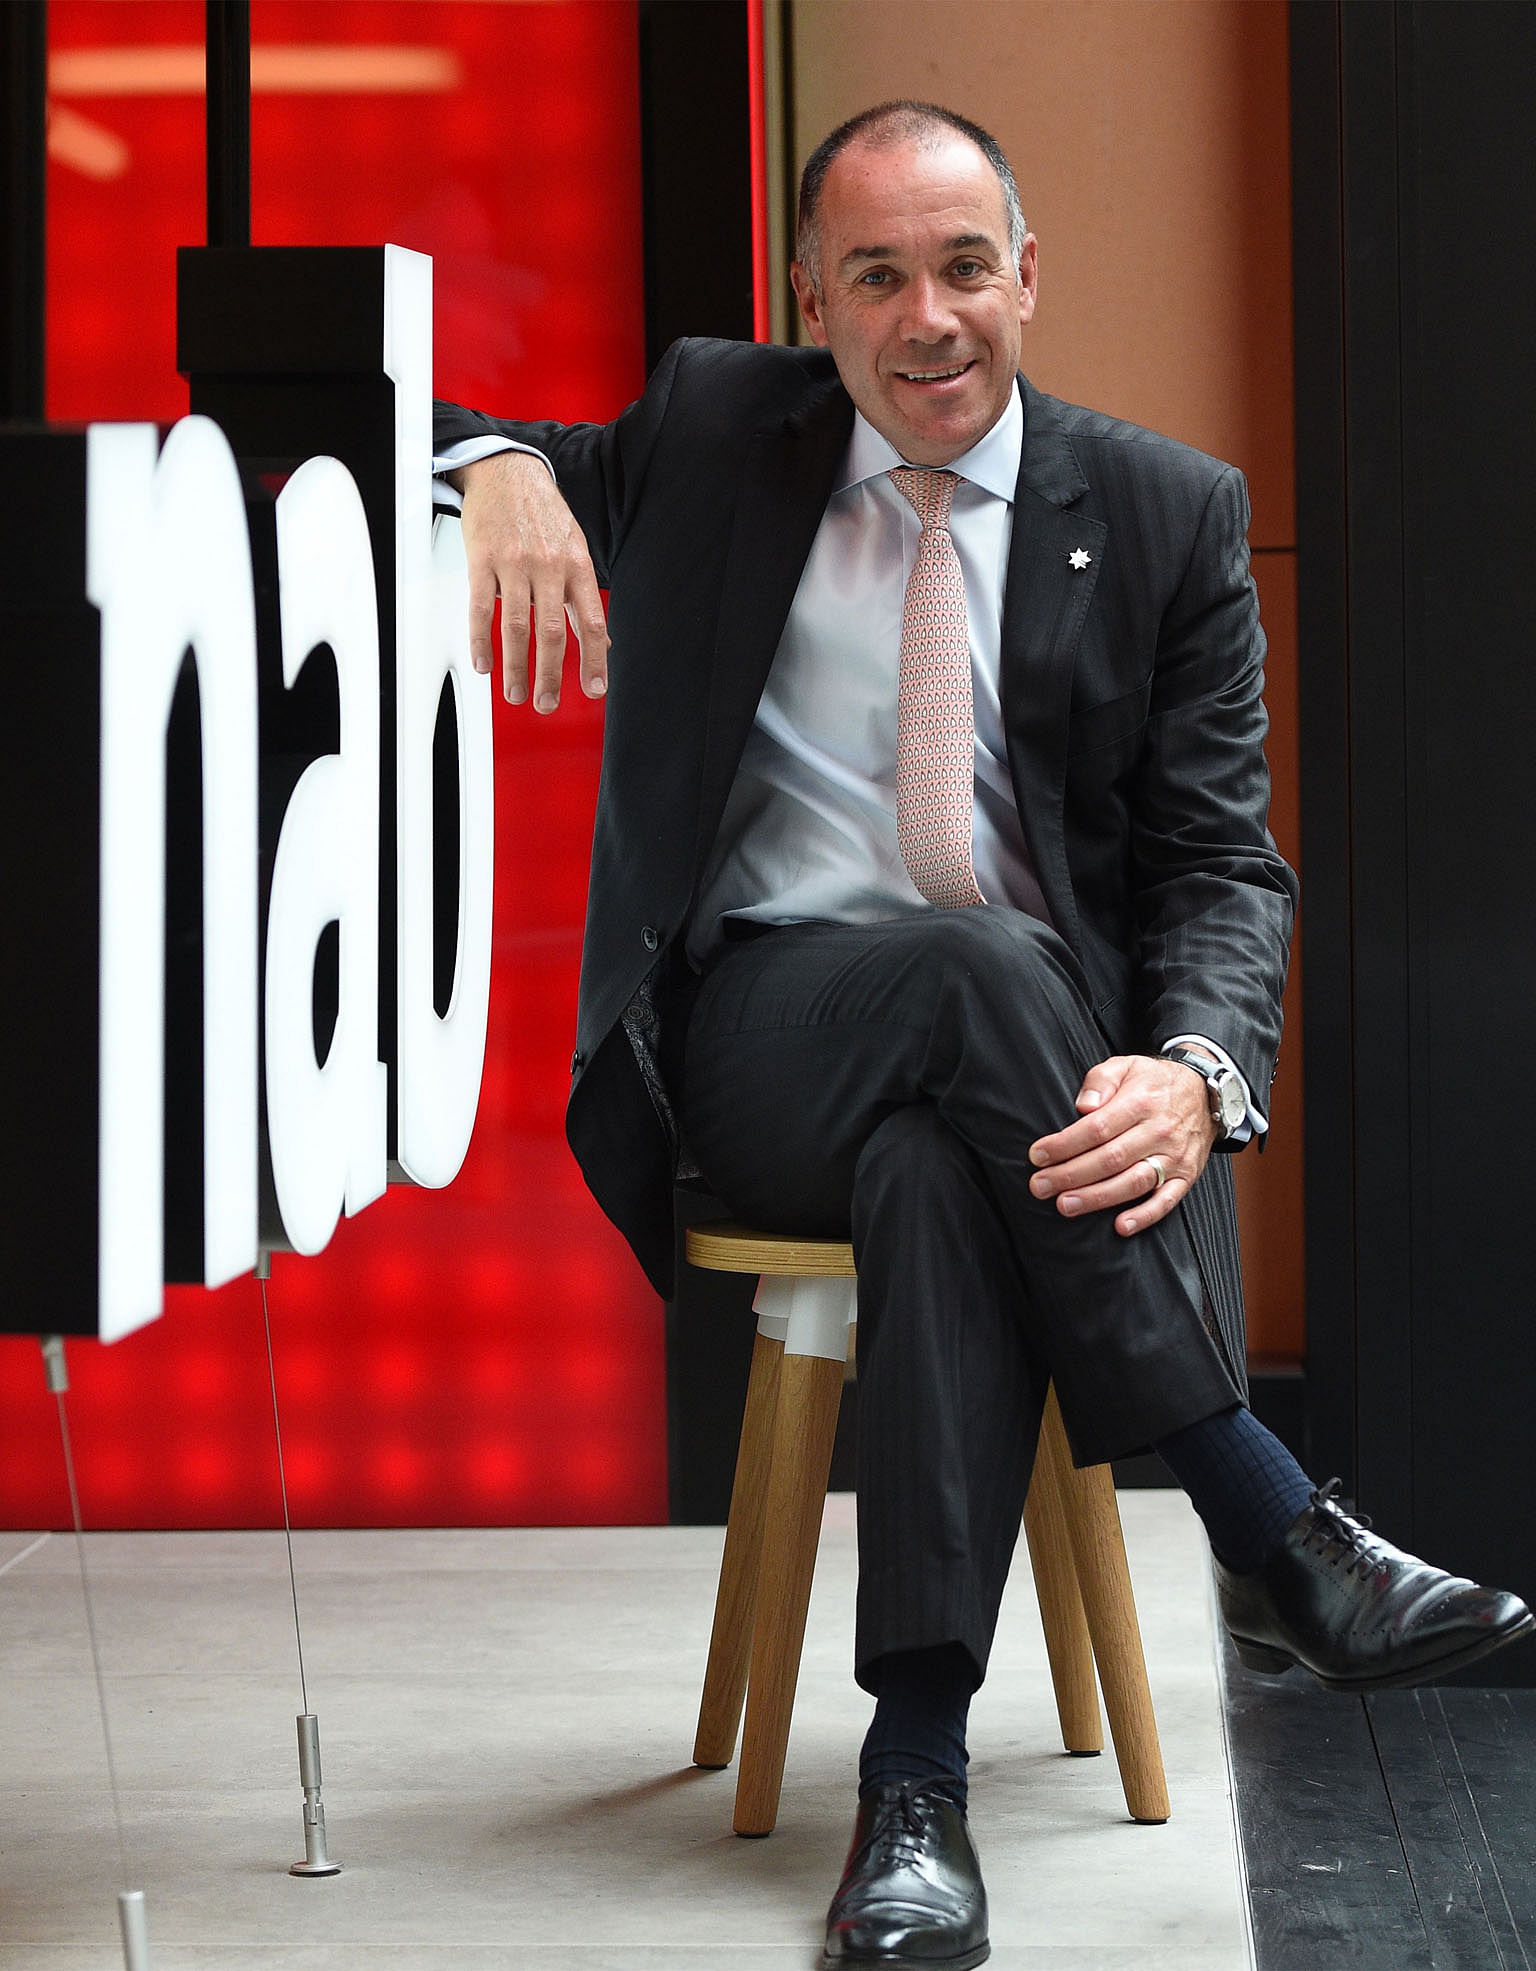 Australia's NAB chief exec and chairman quit, Banking News